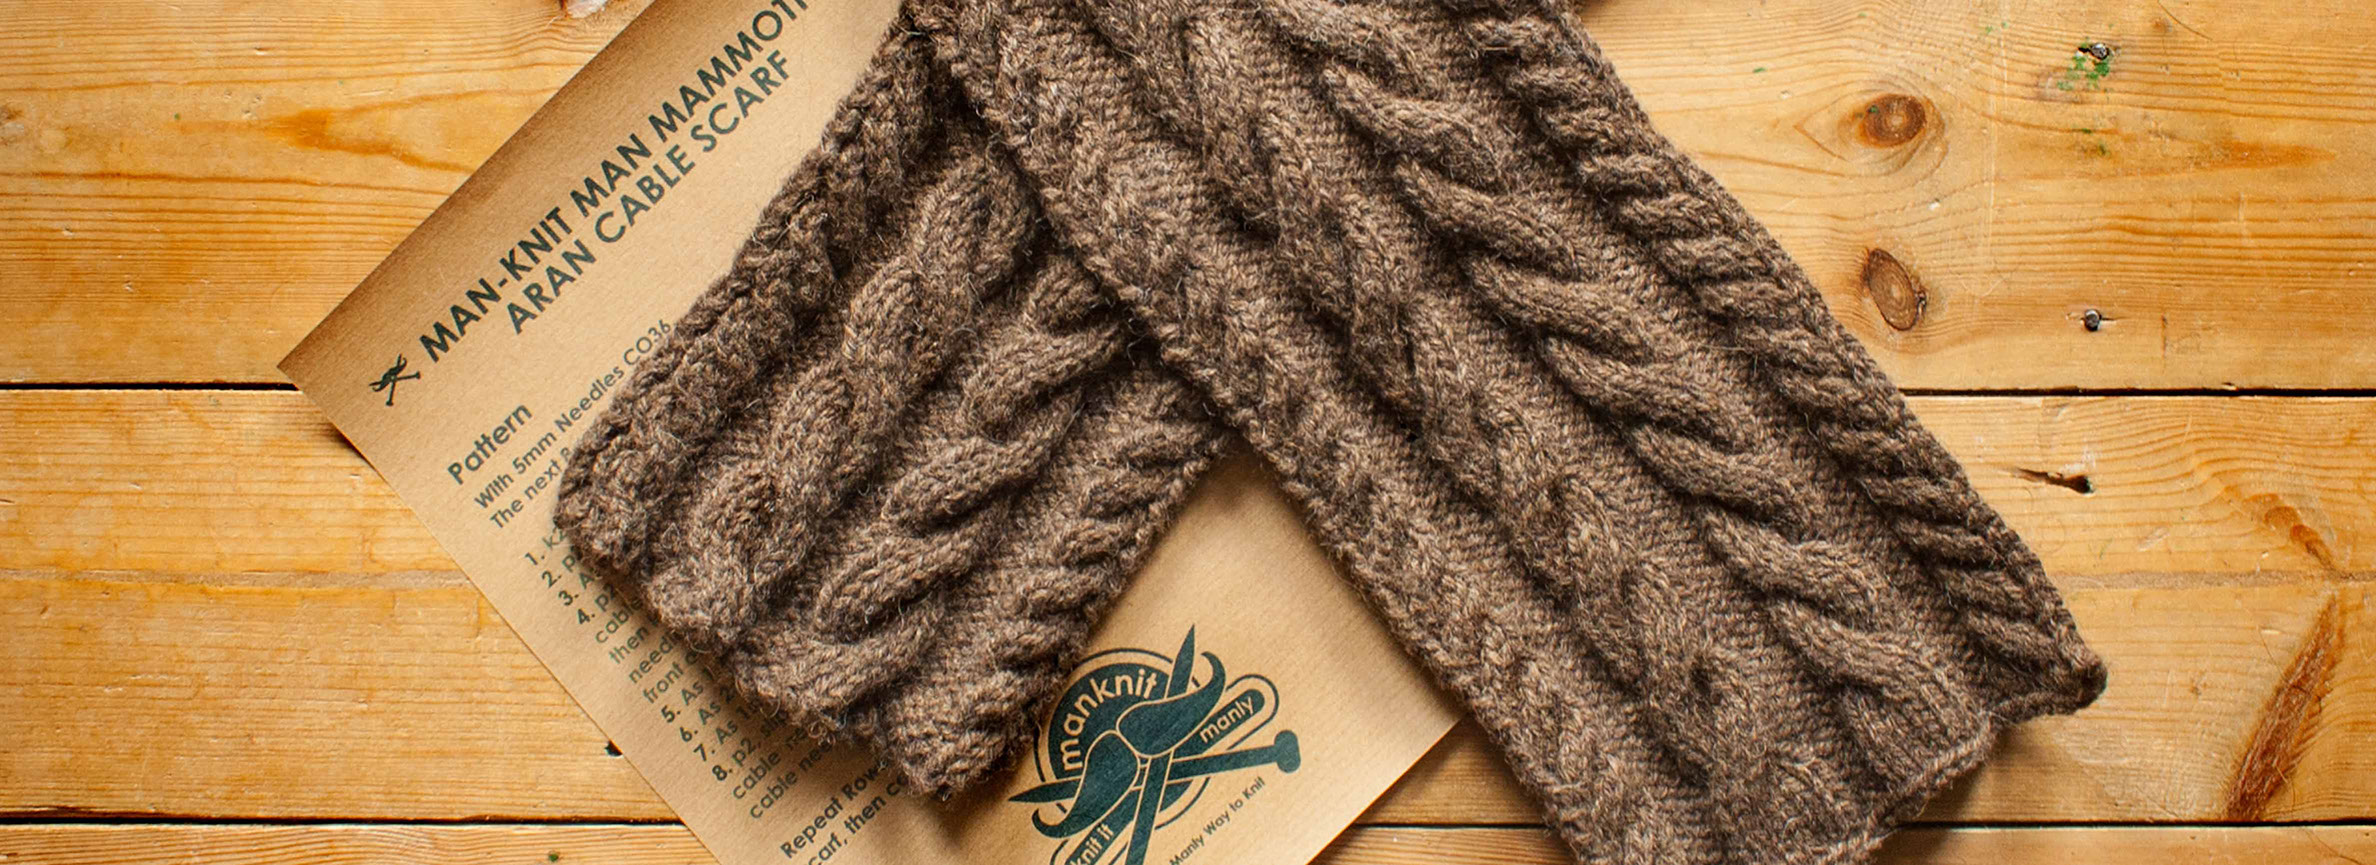 Manknit Man Mammoth Aran Cable Scarf Knitting Pattern Men S Cable